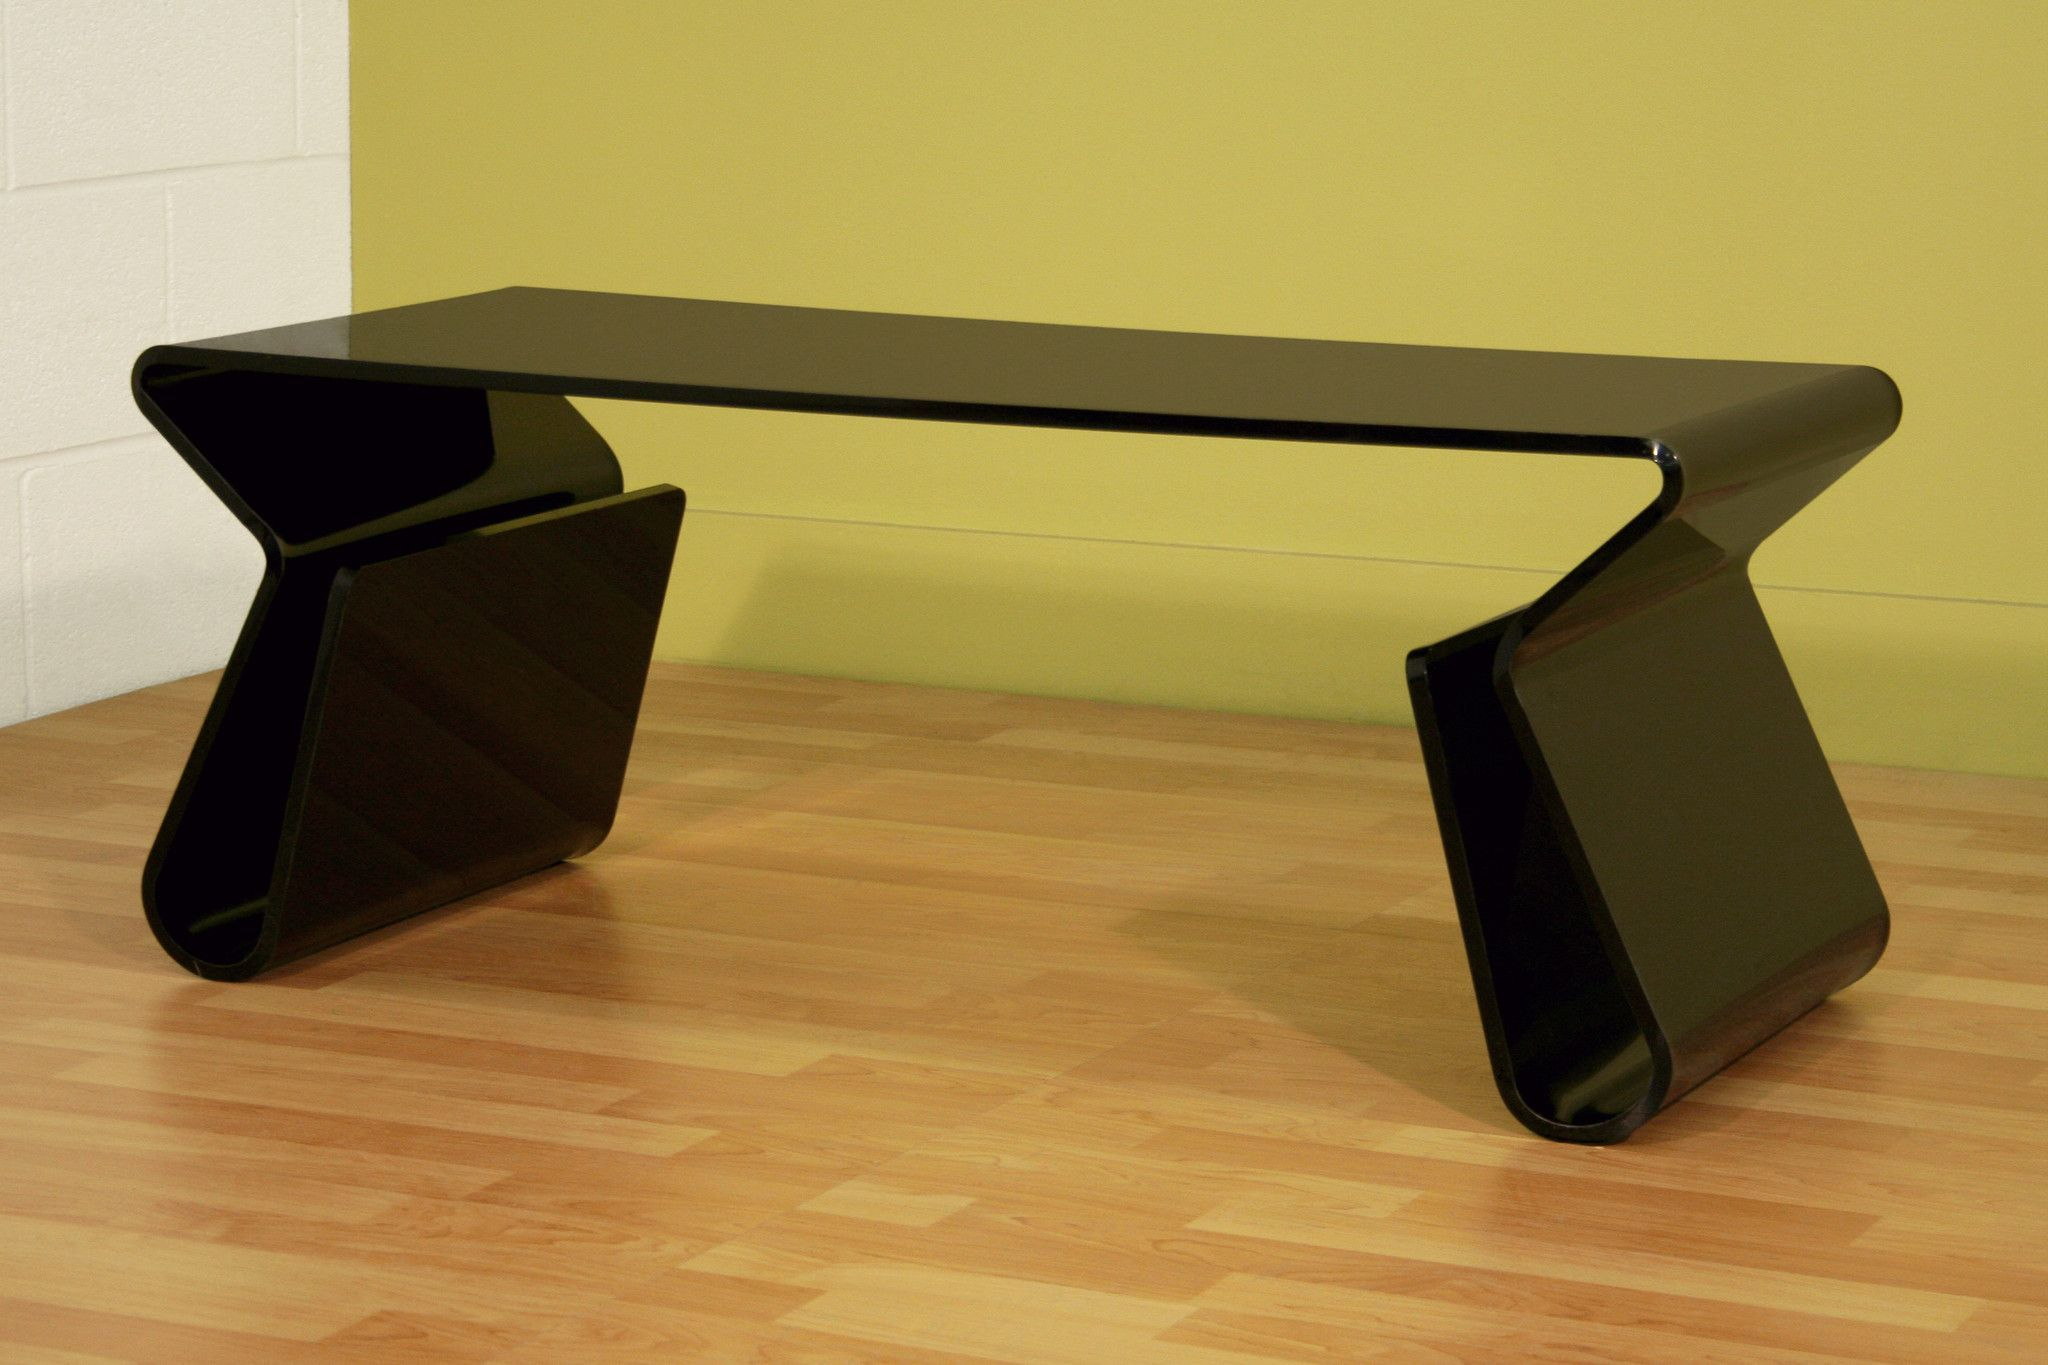 acrylic black coffee table magazine rack products pinterest